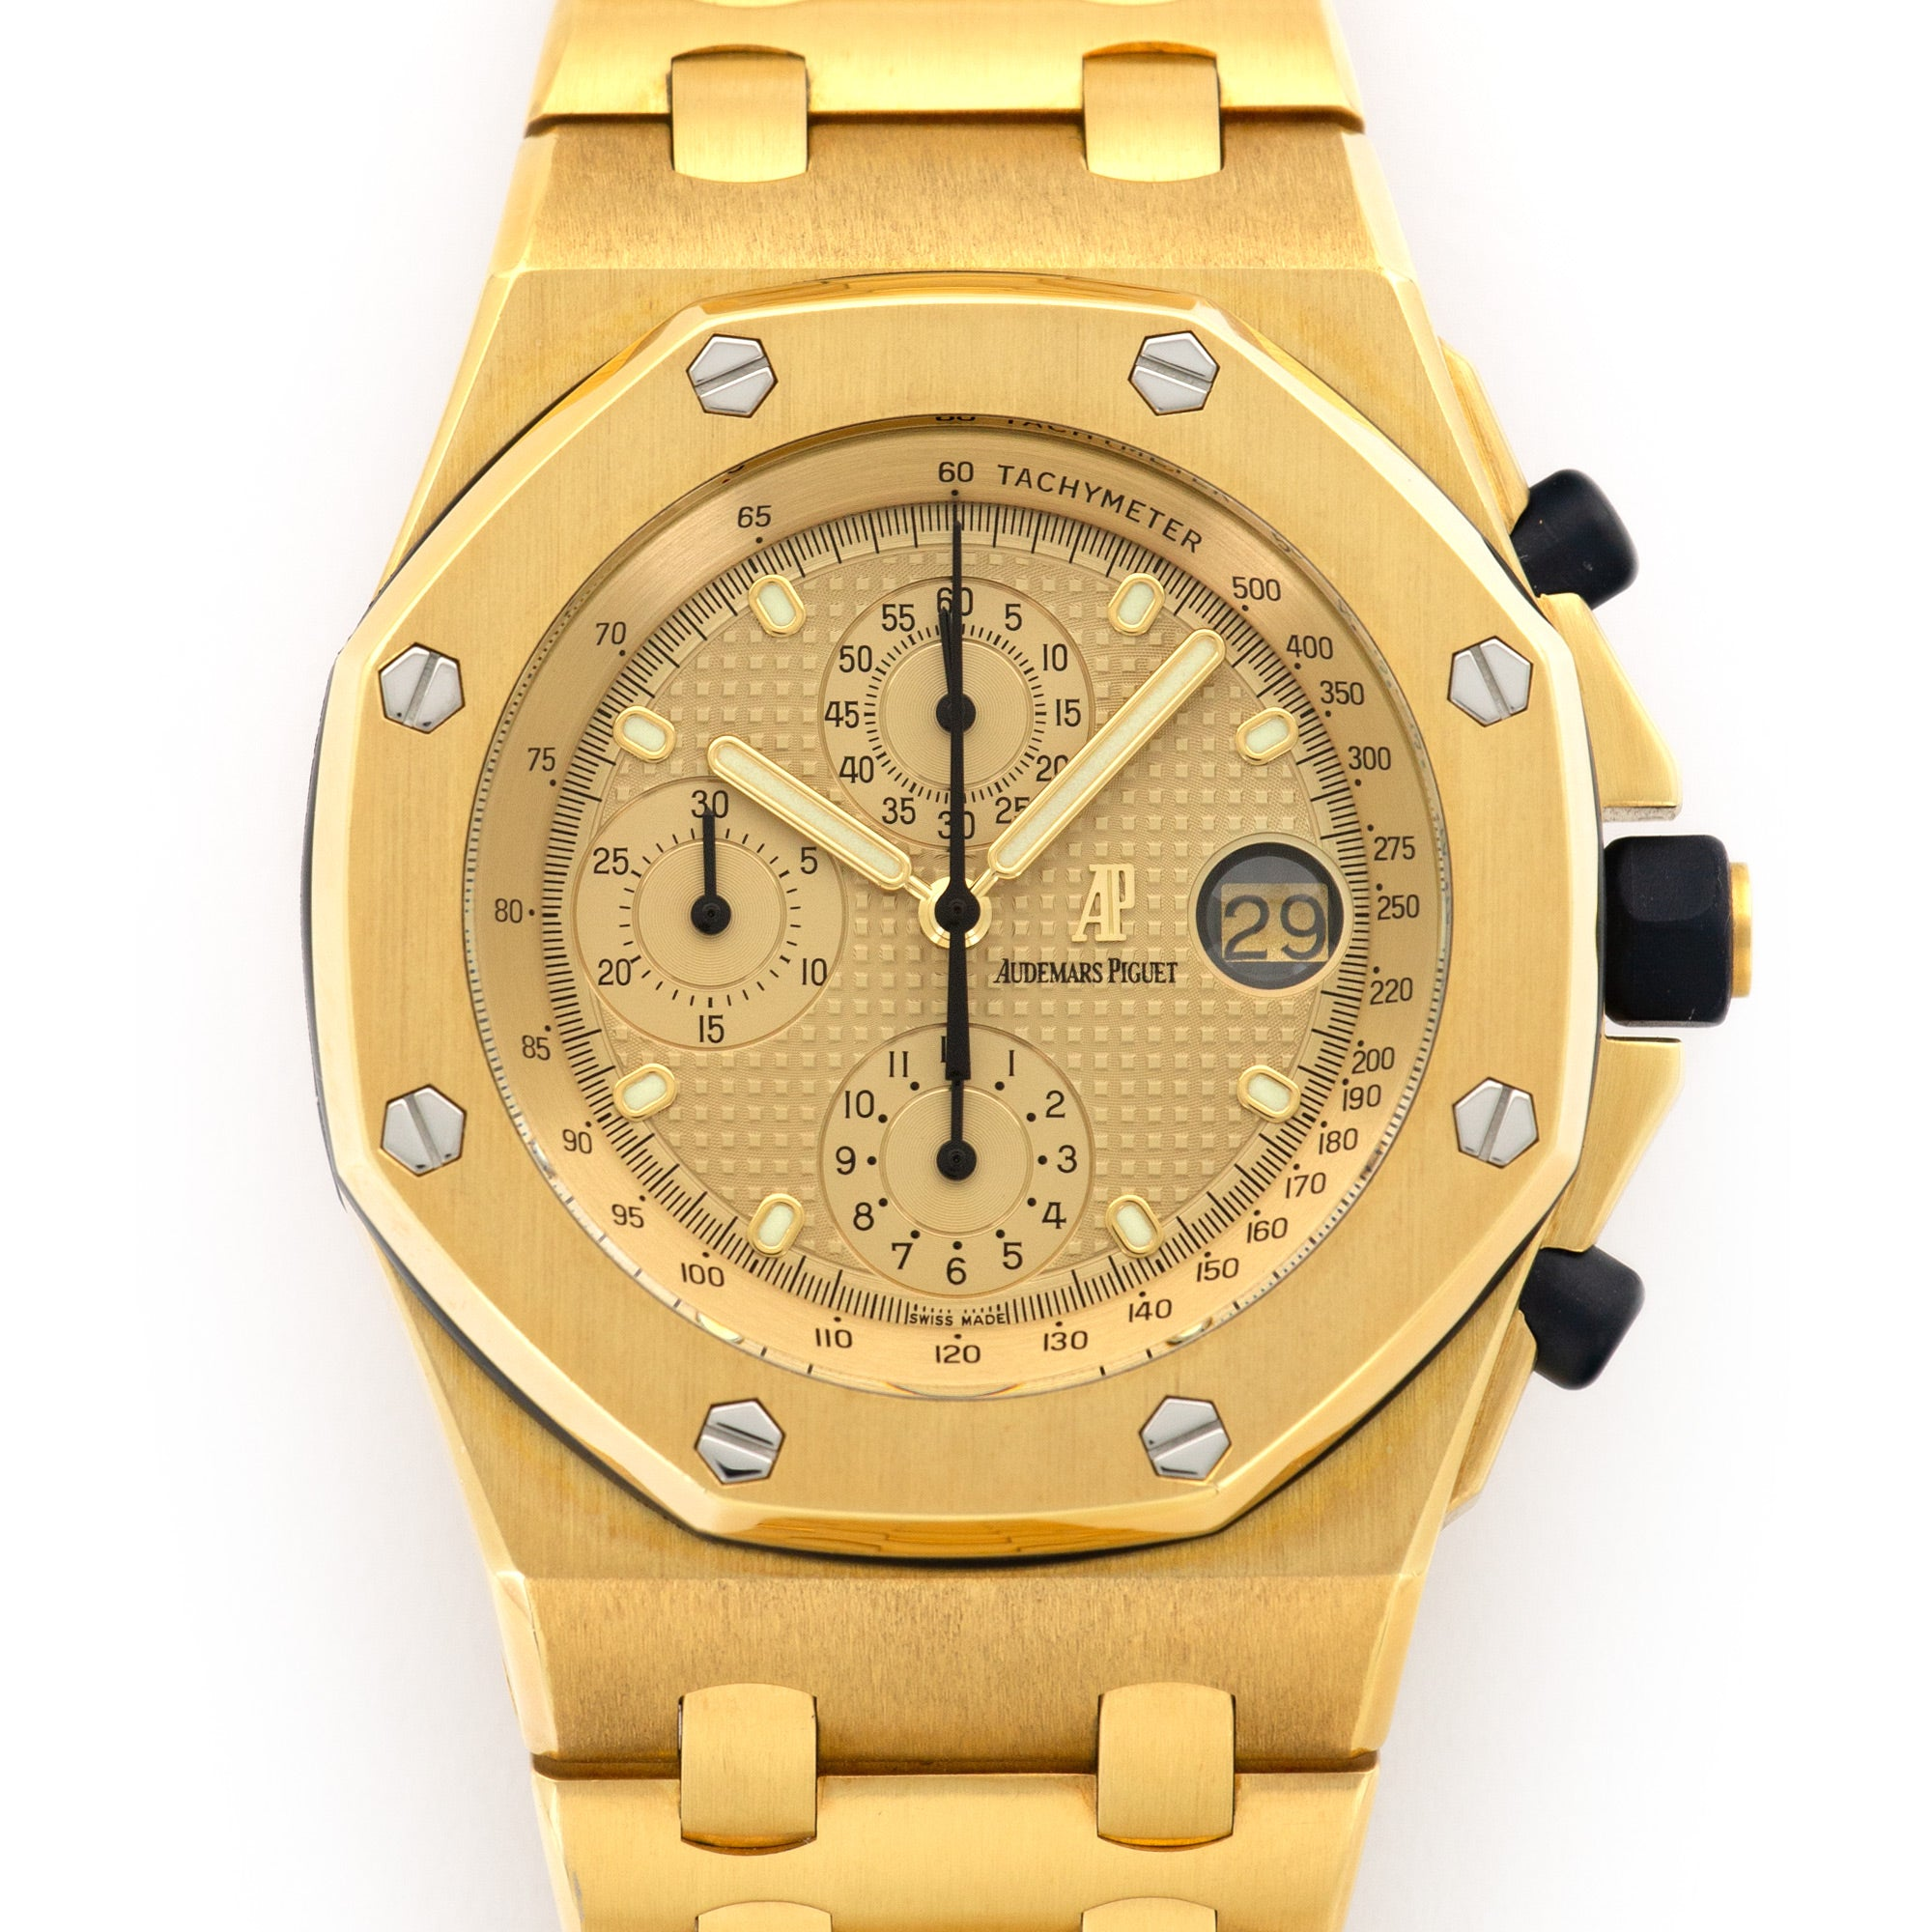 Audemars Piguet Royal Oak Offshore 25721BA.OO.1000BA.03 18k YG  Likely Never Polished, Original Finish Gents 18k YG Champagne Gold 42mm Automatic Early 2000s Yellow Gold Bracelet Original Box